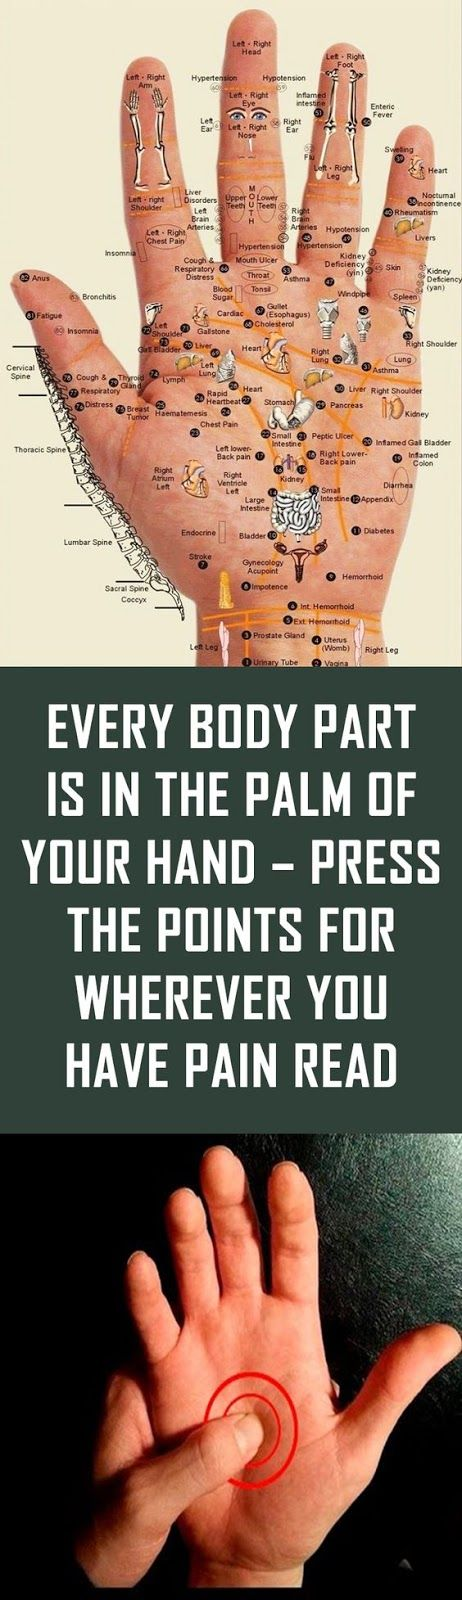 Press Pressure Points On Hand To Relieve Pain